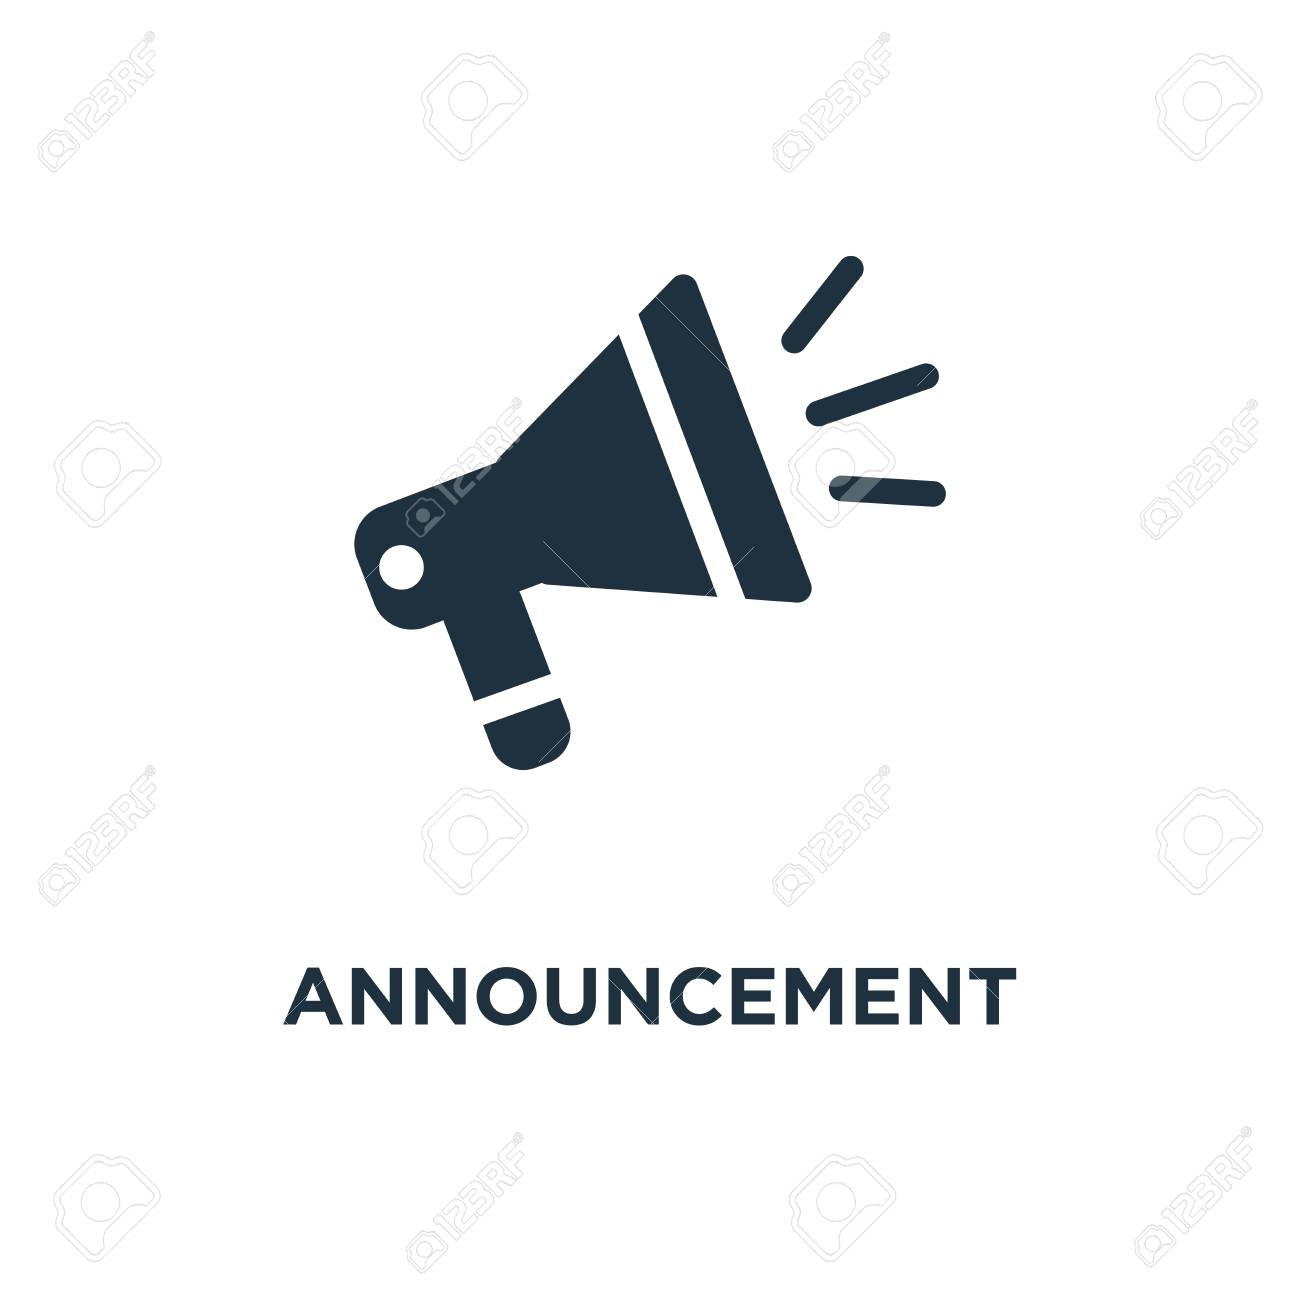 announcement icon black filled